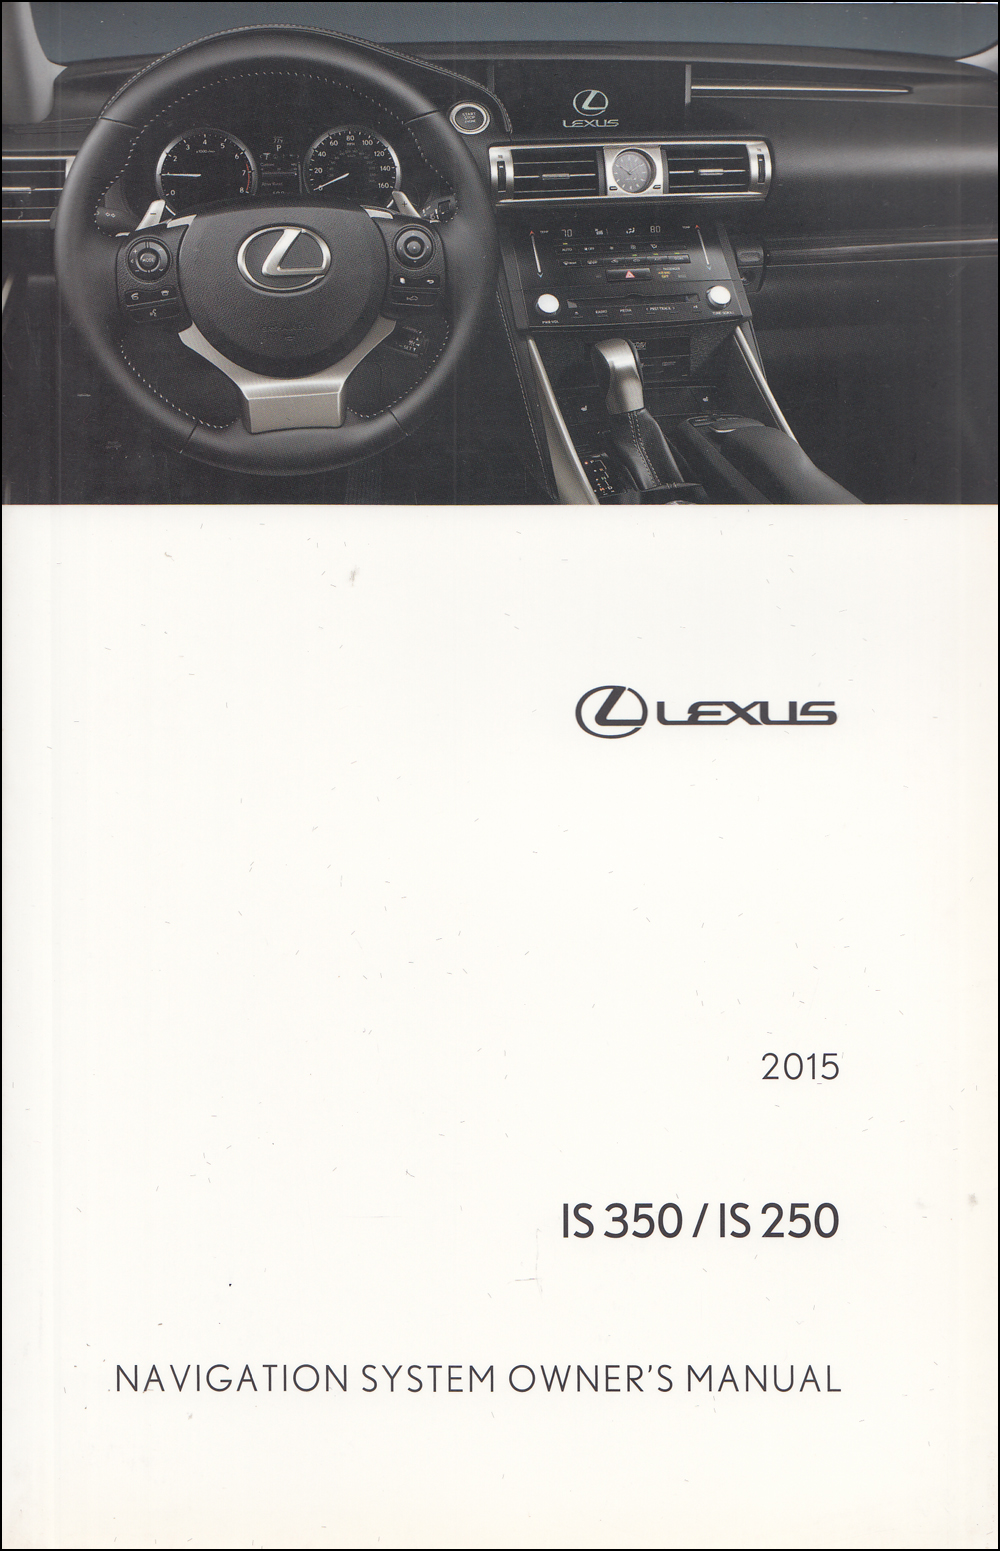 2015 Lexus IS Navigation System Owner's Manual Original